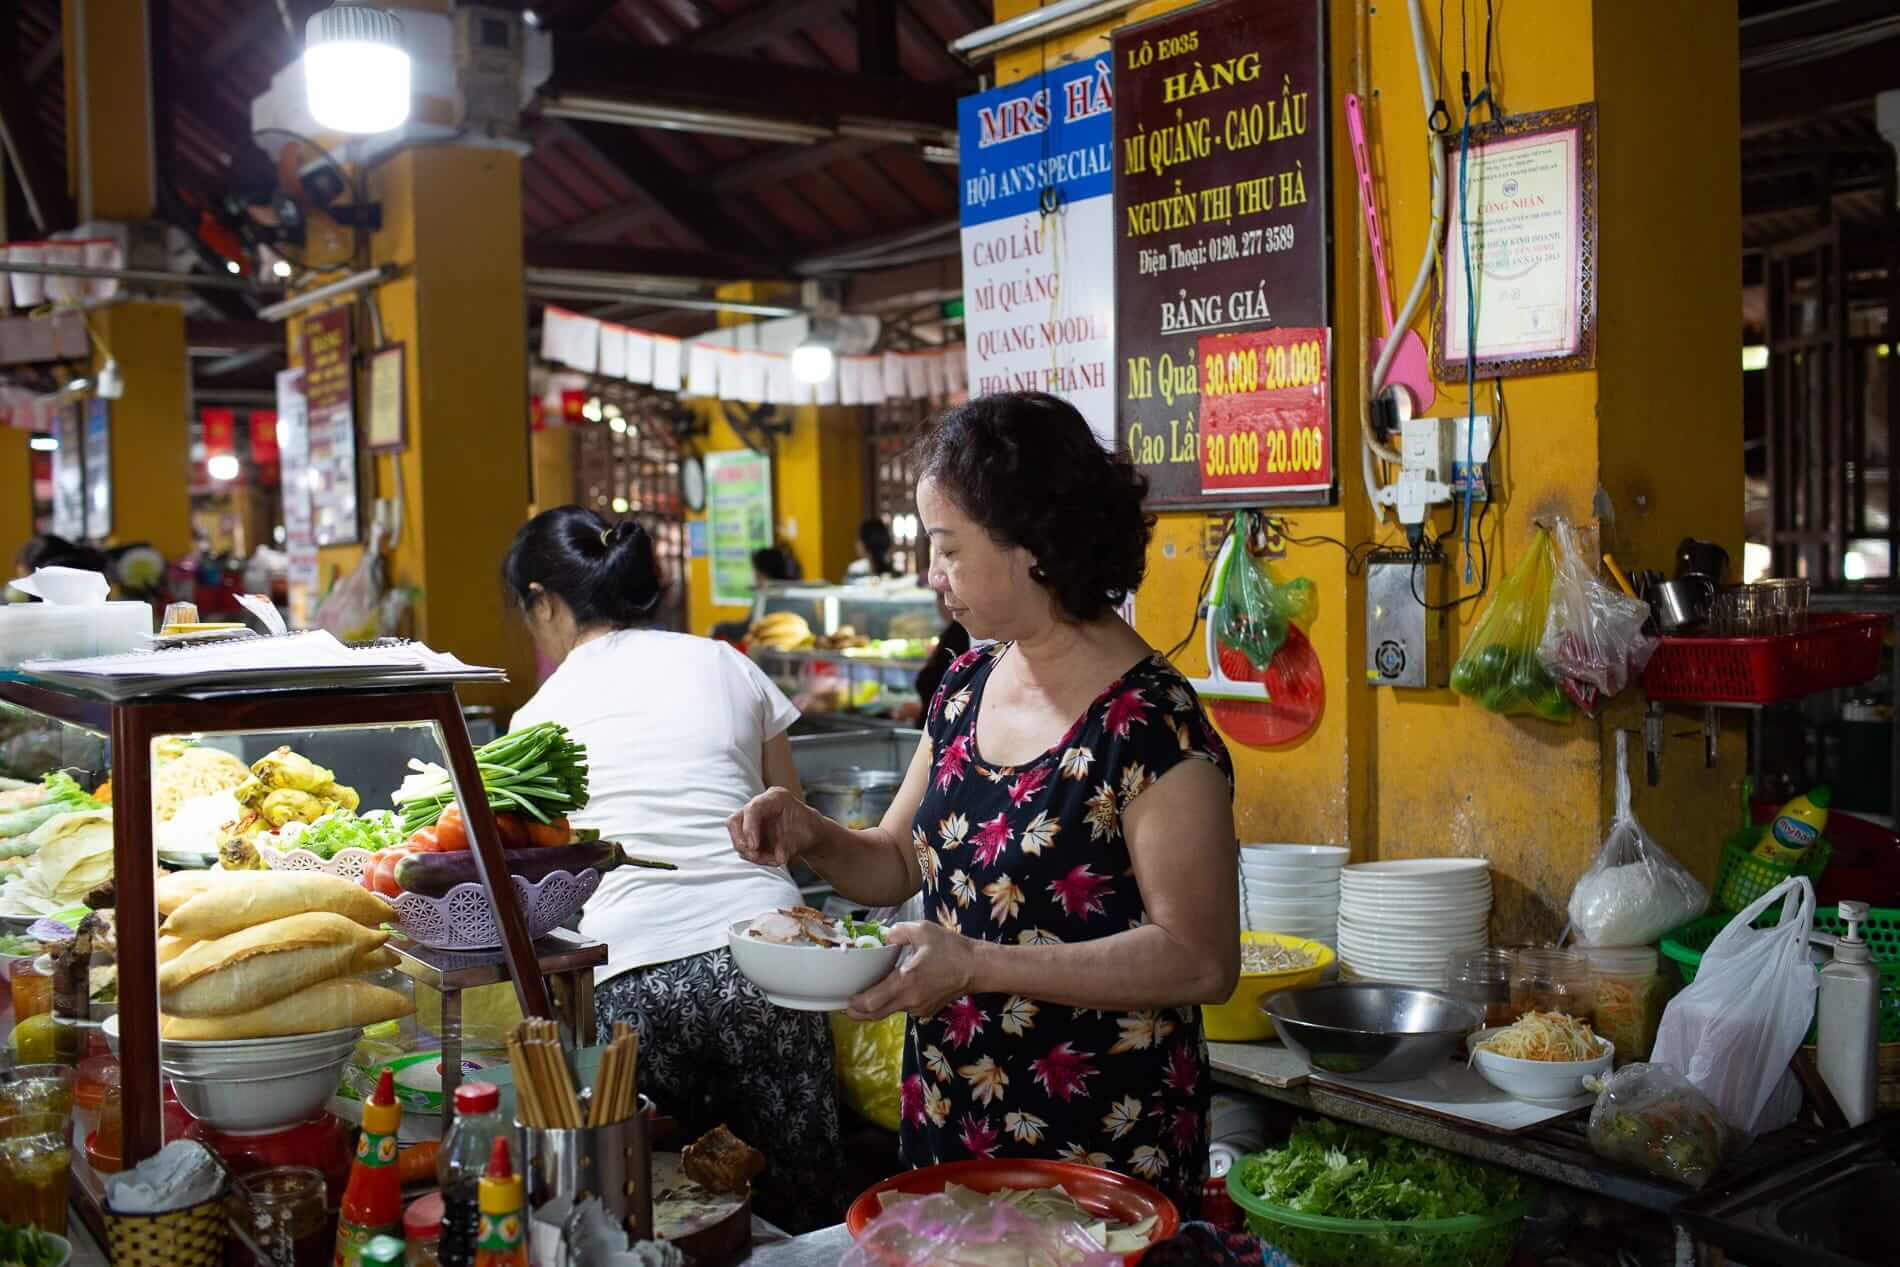 Mrs Ha makes a bowl of her popular Cao Lau